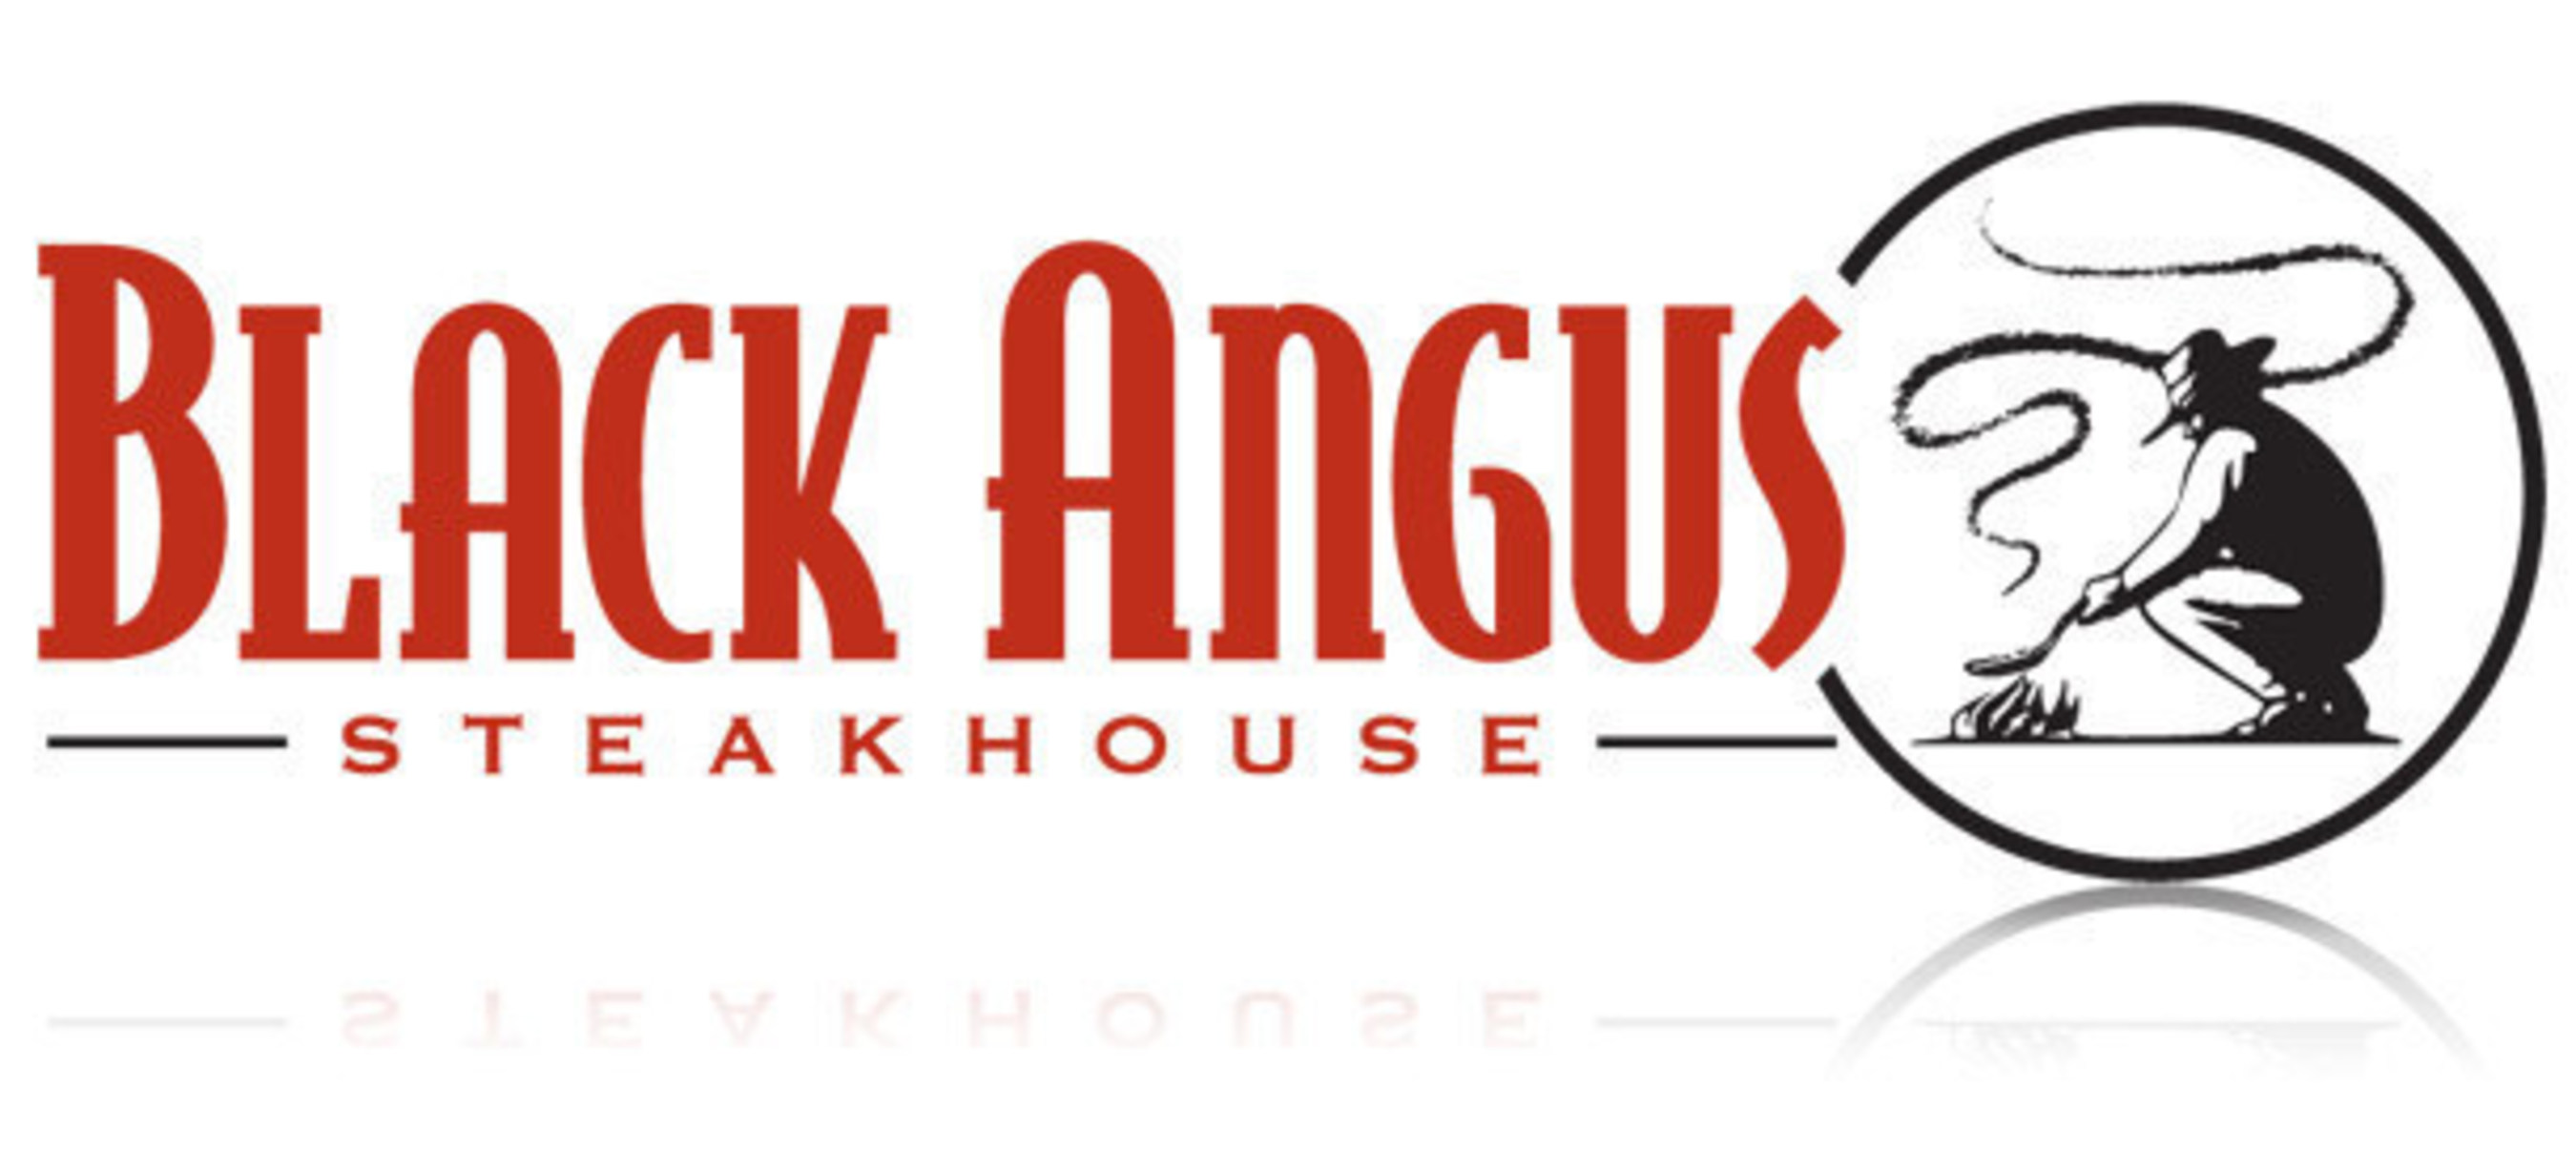 Black Angus Steakhouse 30% off $50 Ecard Gift Card Image